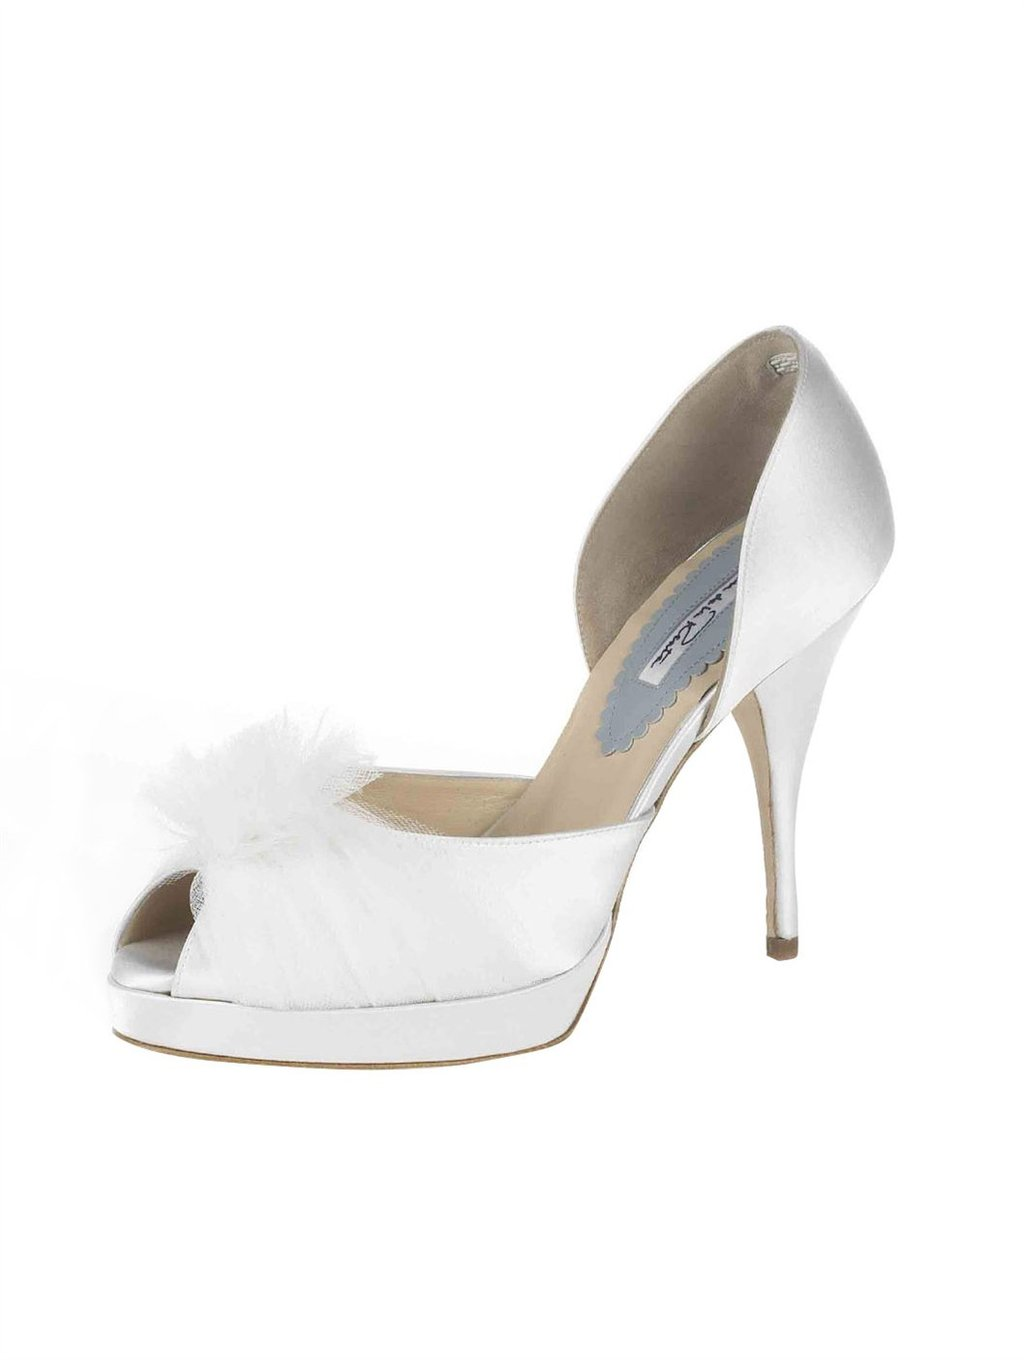 bridal shoes Oscar de la Renta wedding heels white satin dorsay tulle poof